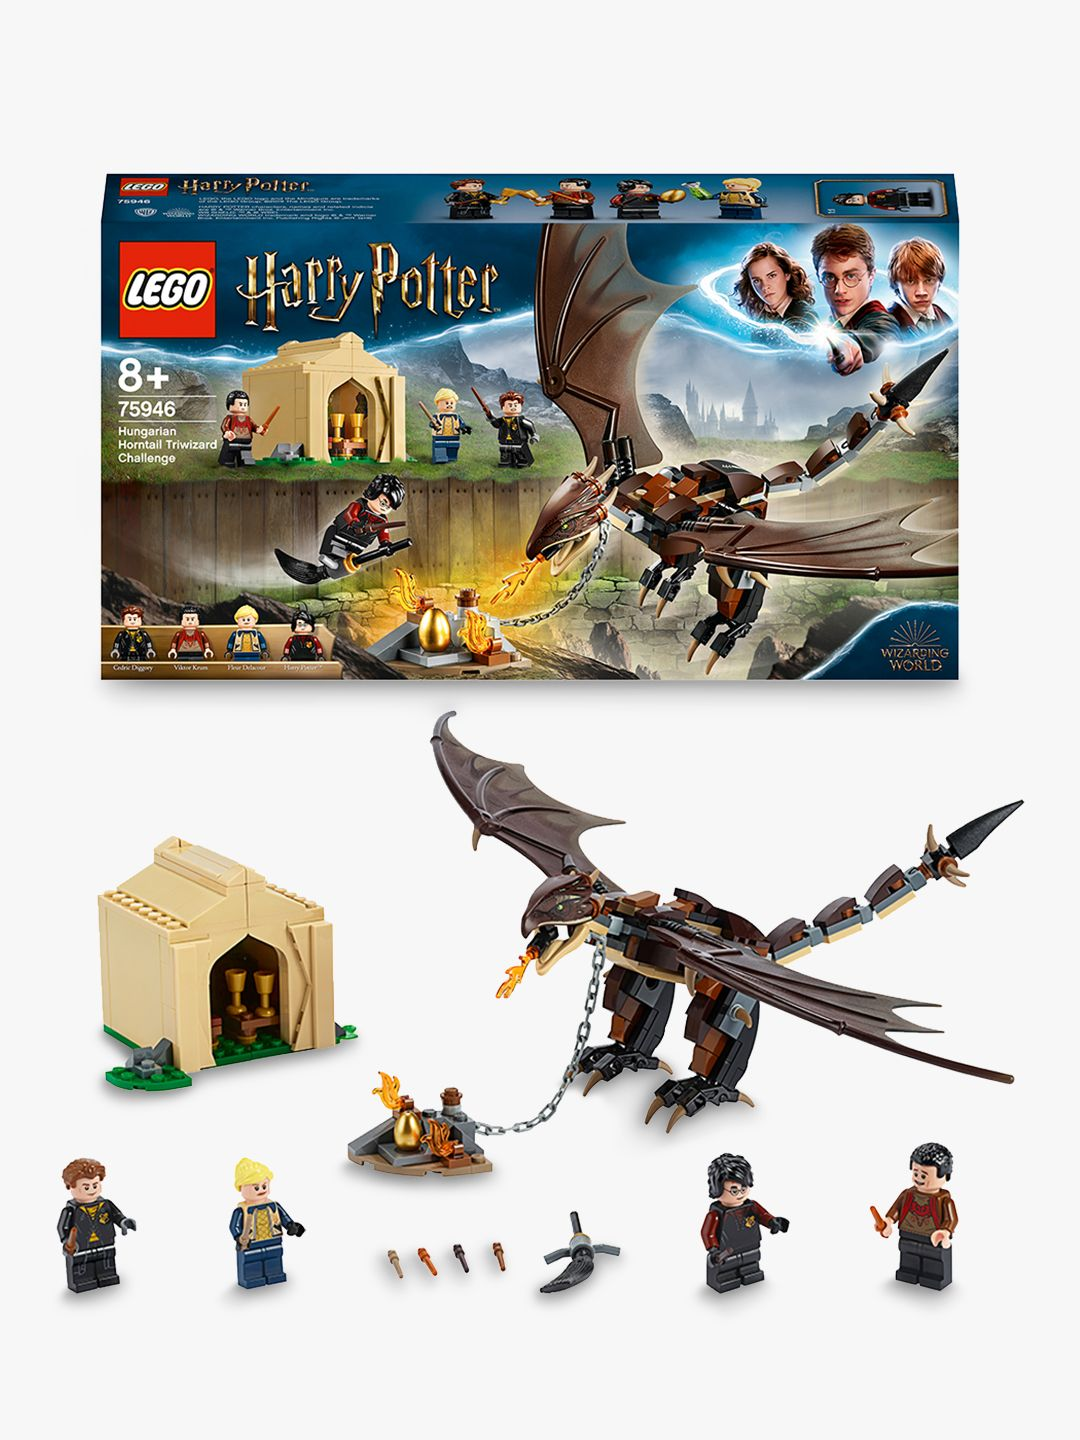 Lego LEGO Harry Potter 75946 Hungarian Horntail Dragon Triwizard Challenge